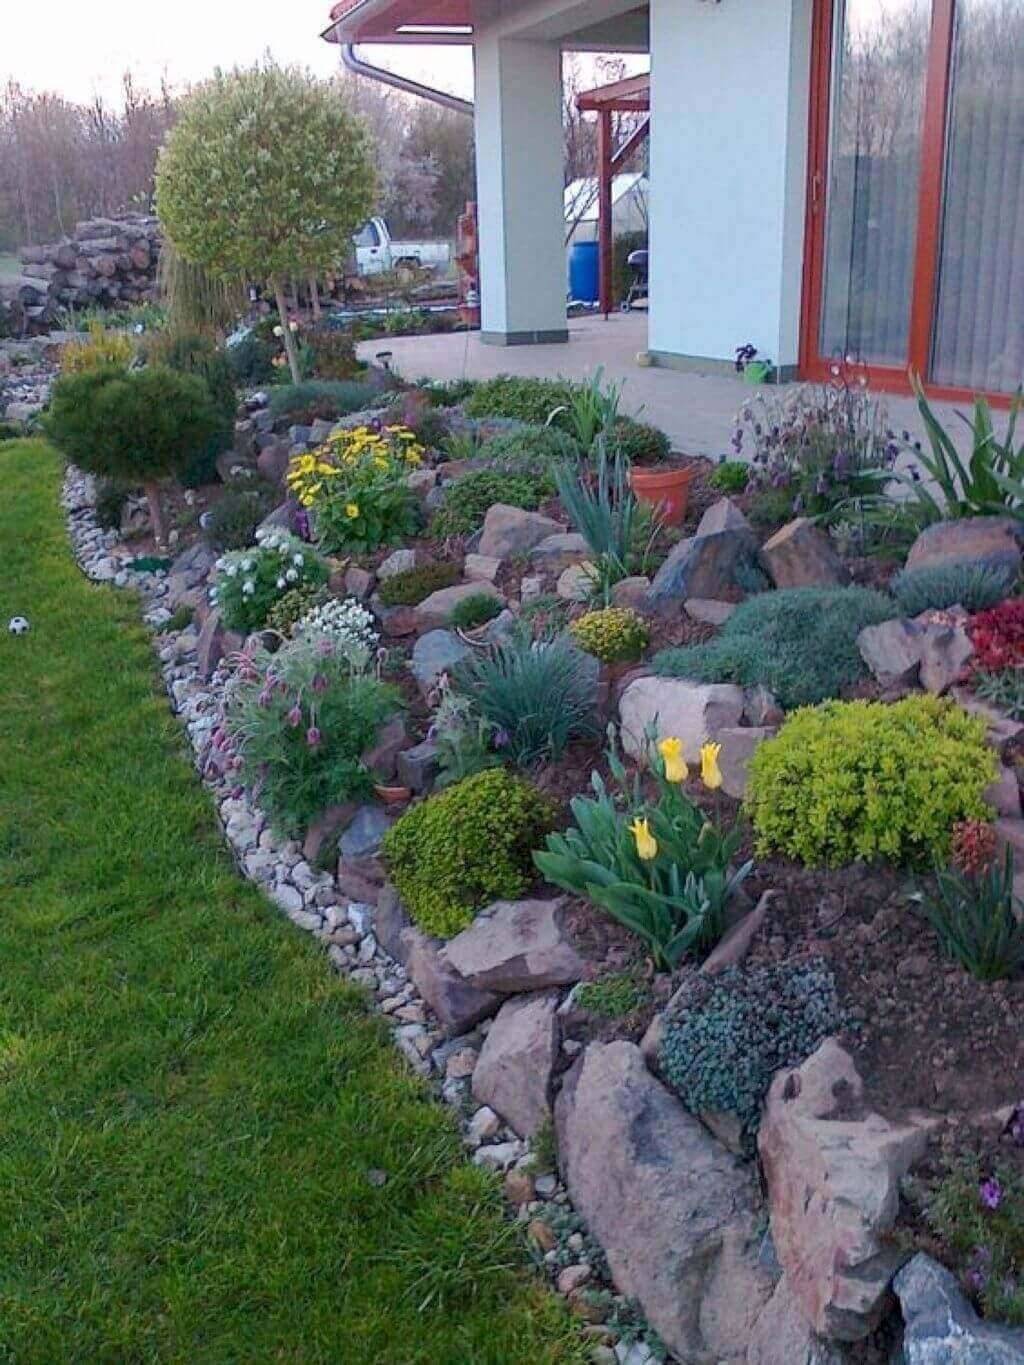 Lawn Edging Designs May Sound Like A Boring Topic You Will See There Are Some Creative And Interesting Rock Garden Design Sloped Garden Front Yard Landscaping Backyard landscaping ideas with stones